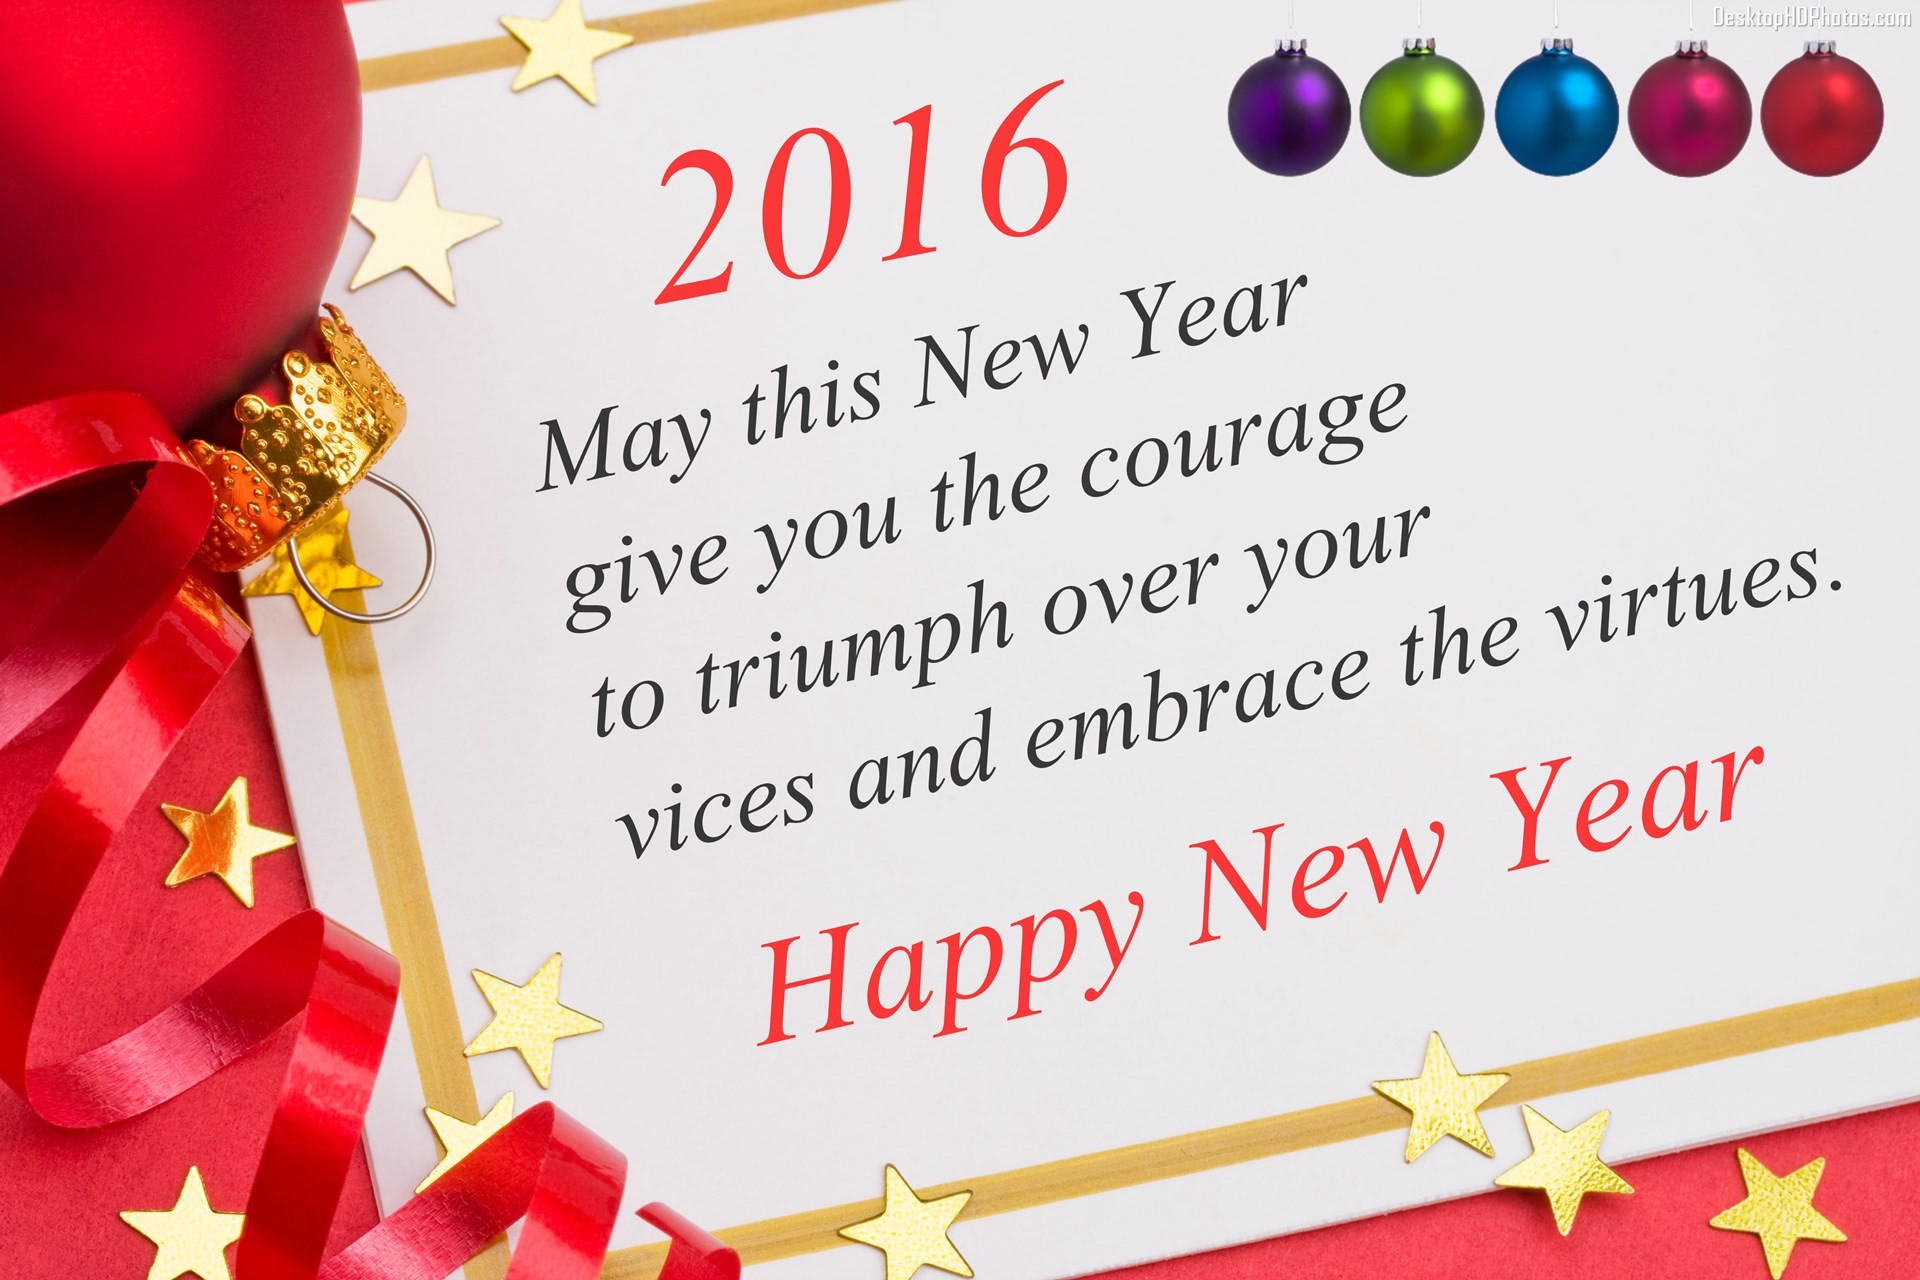 happy new year 2016 may this new year give you the courage to triumph over your